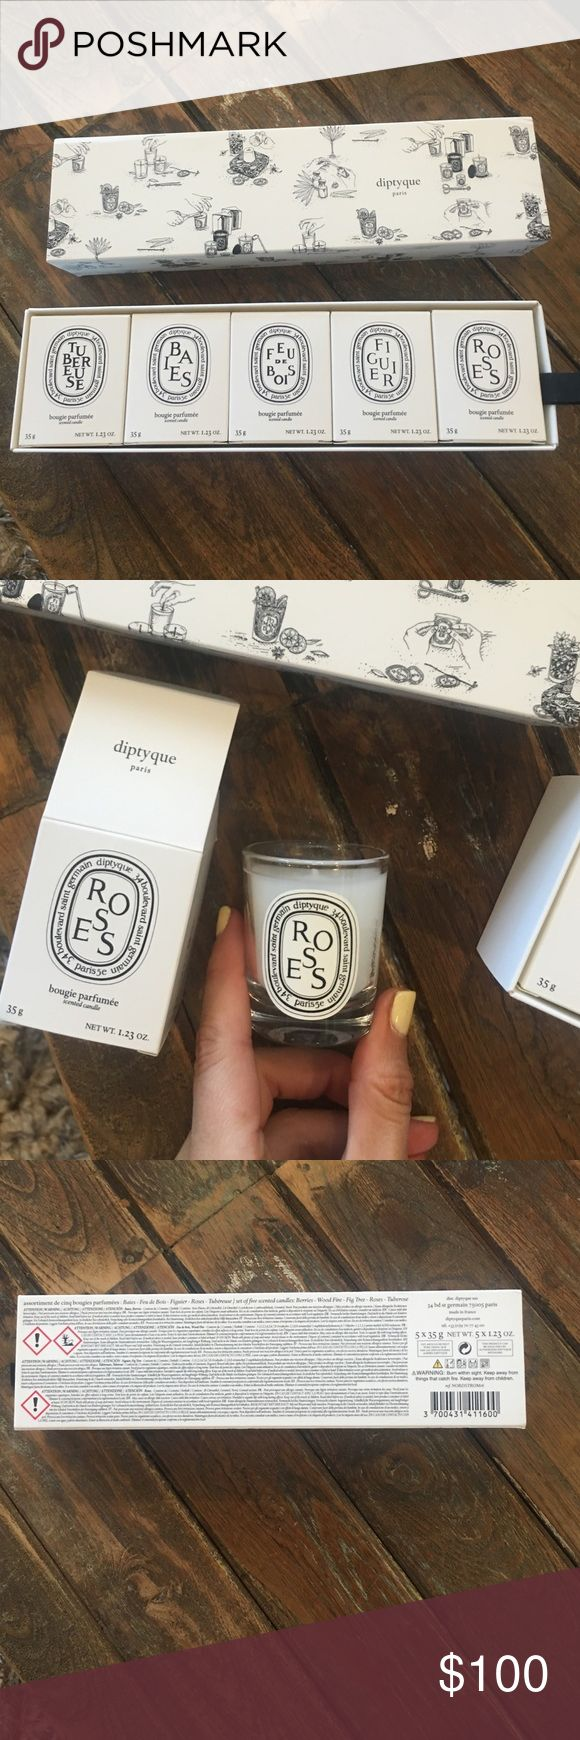 New Diptyque Paris Nordstrom Candles 5 x 1.23oz New Diptyque Paris Nordstrom Candles 5 x 1.23oz - in box - berries, wood fire, fig tree, roses & tuberose - amazing smells! Diptyque Other